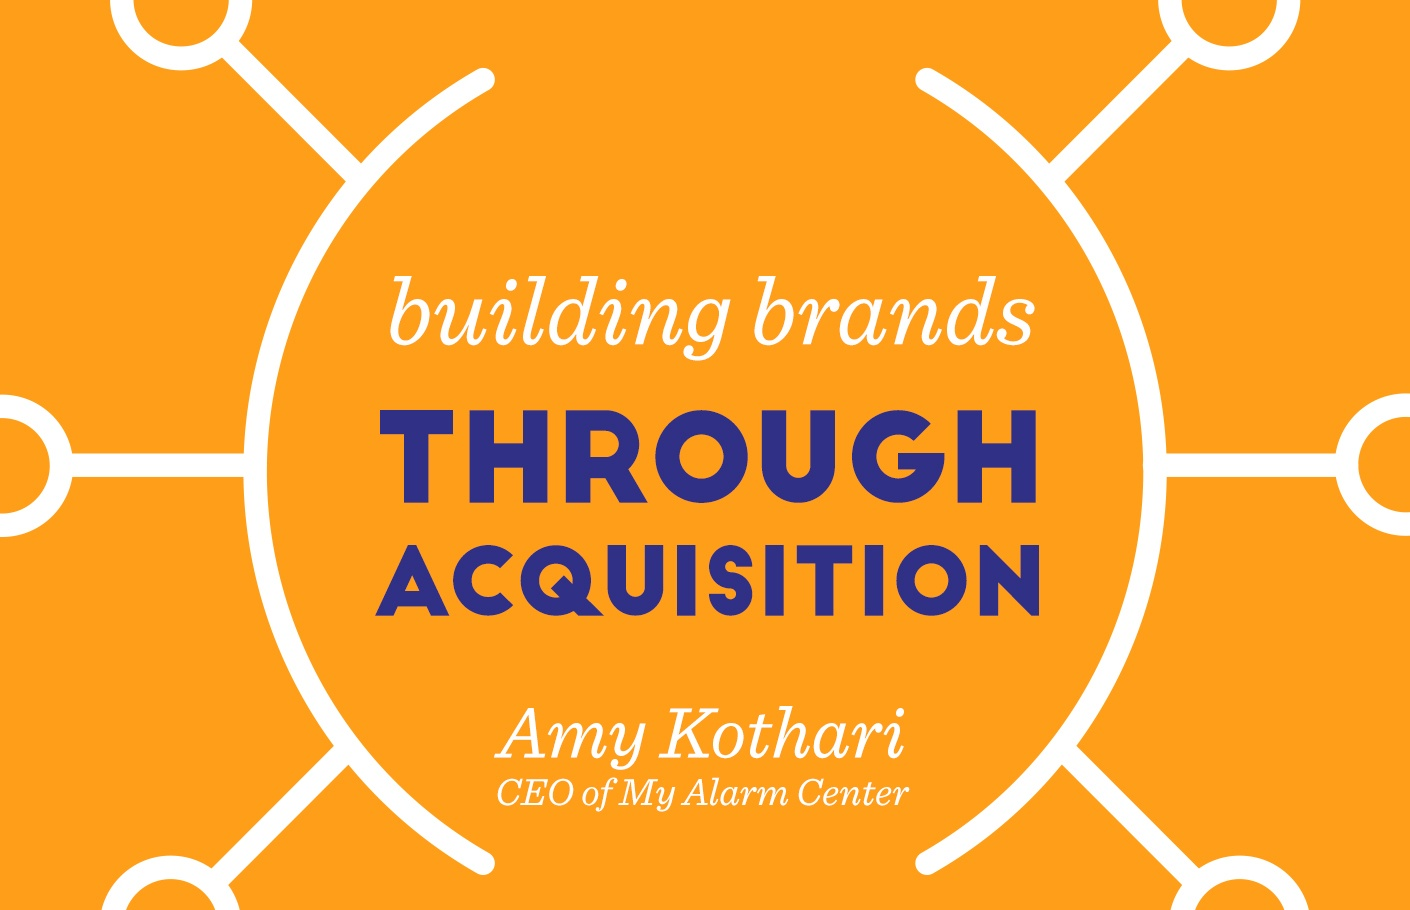 Building Brands Through Acquisition - Amy Kothari, My Alarm Center